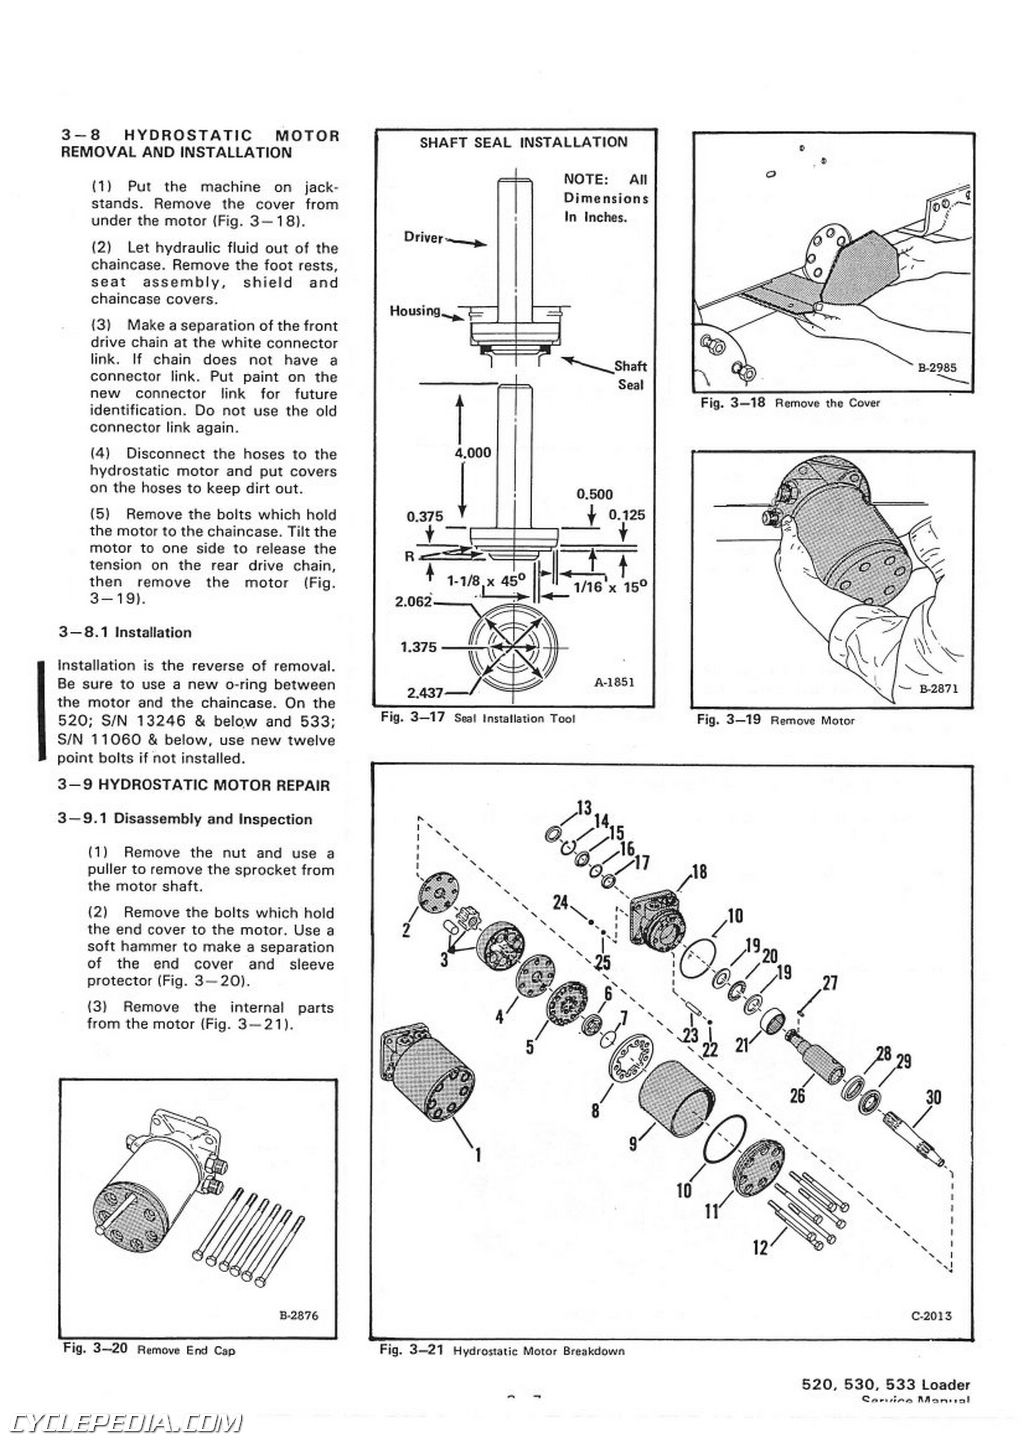 Bobcat S250 Repair Manual Diagram Diagram Wiring Diagram